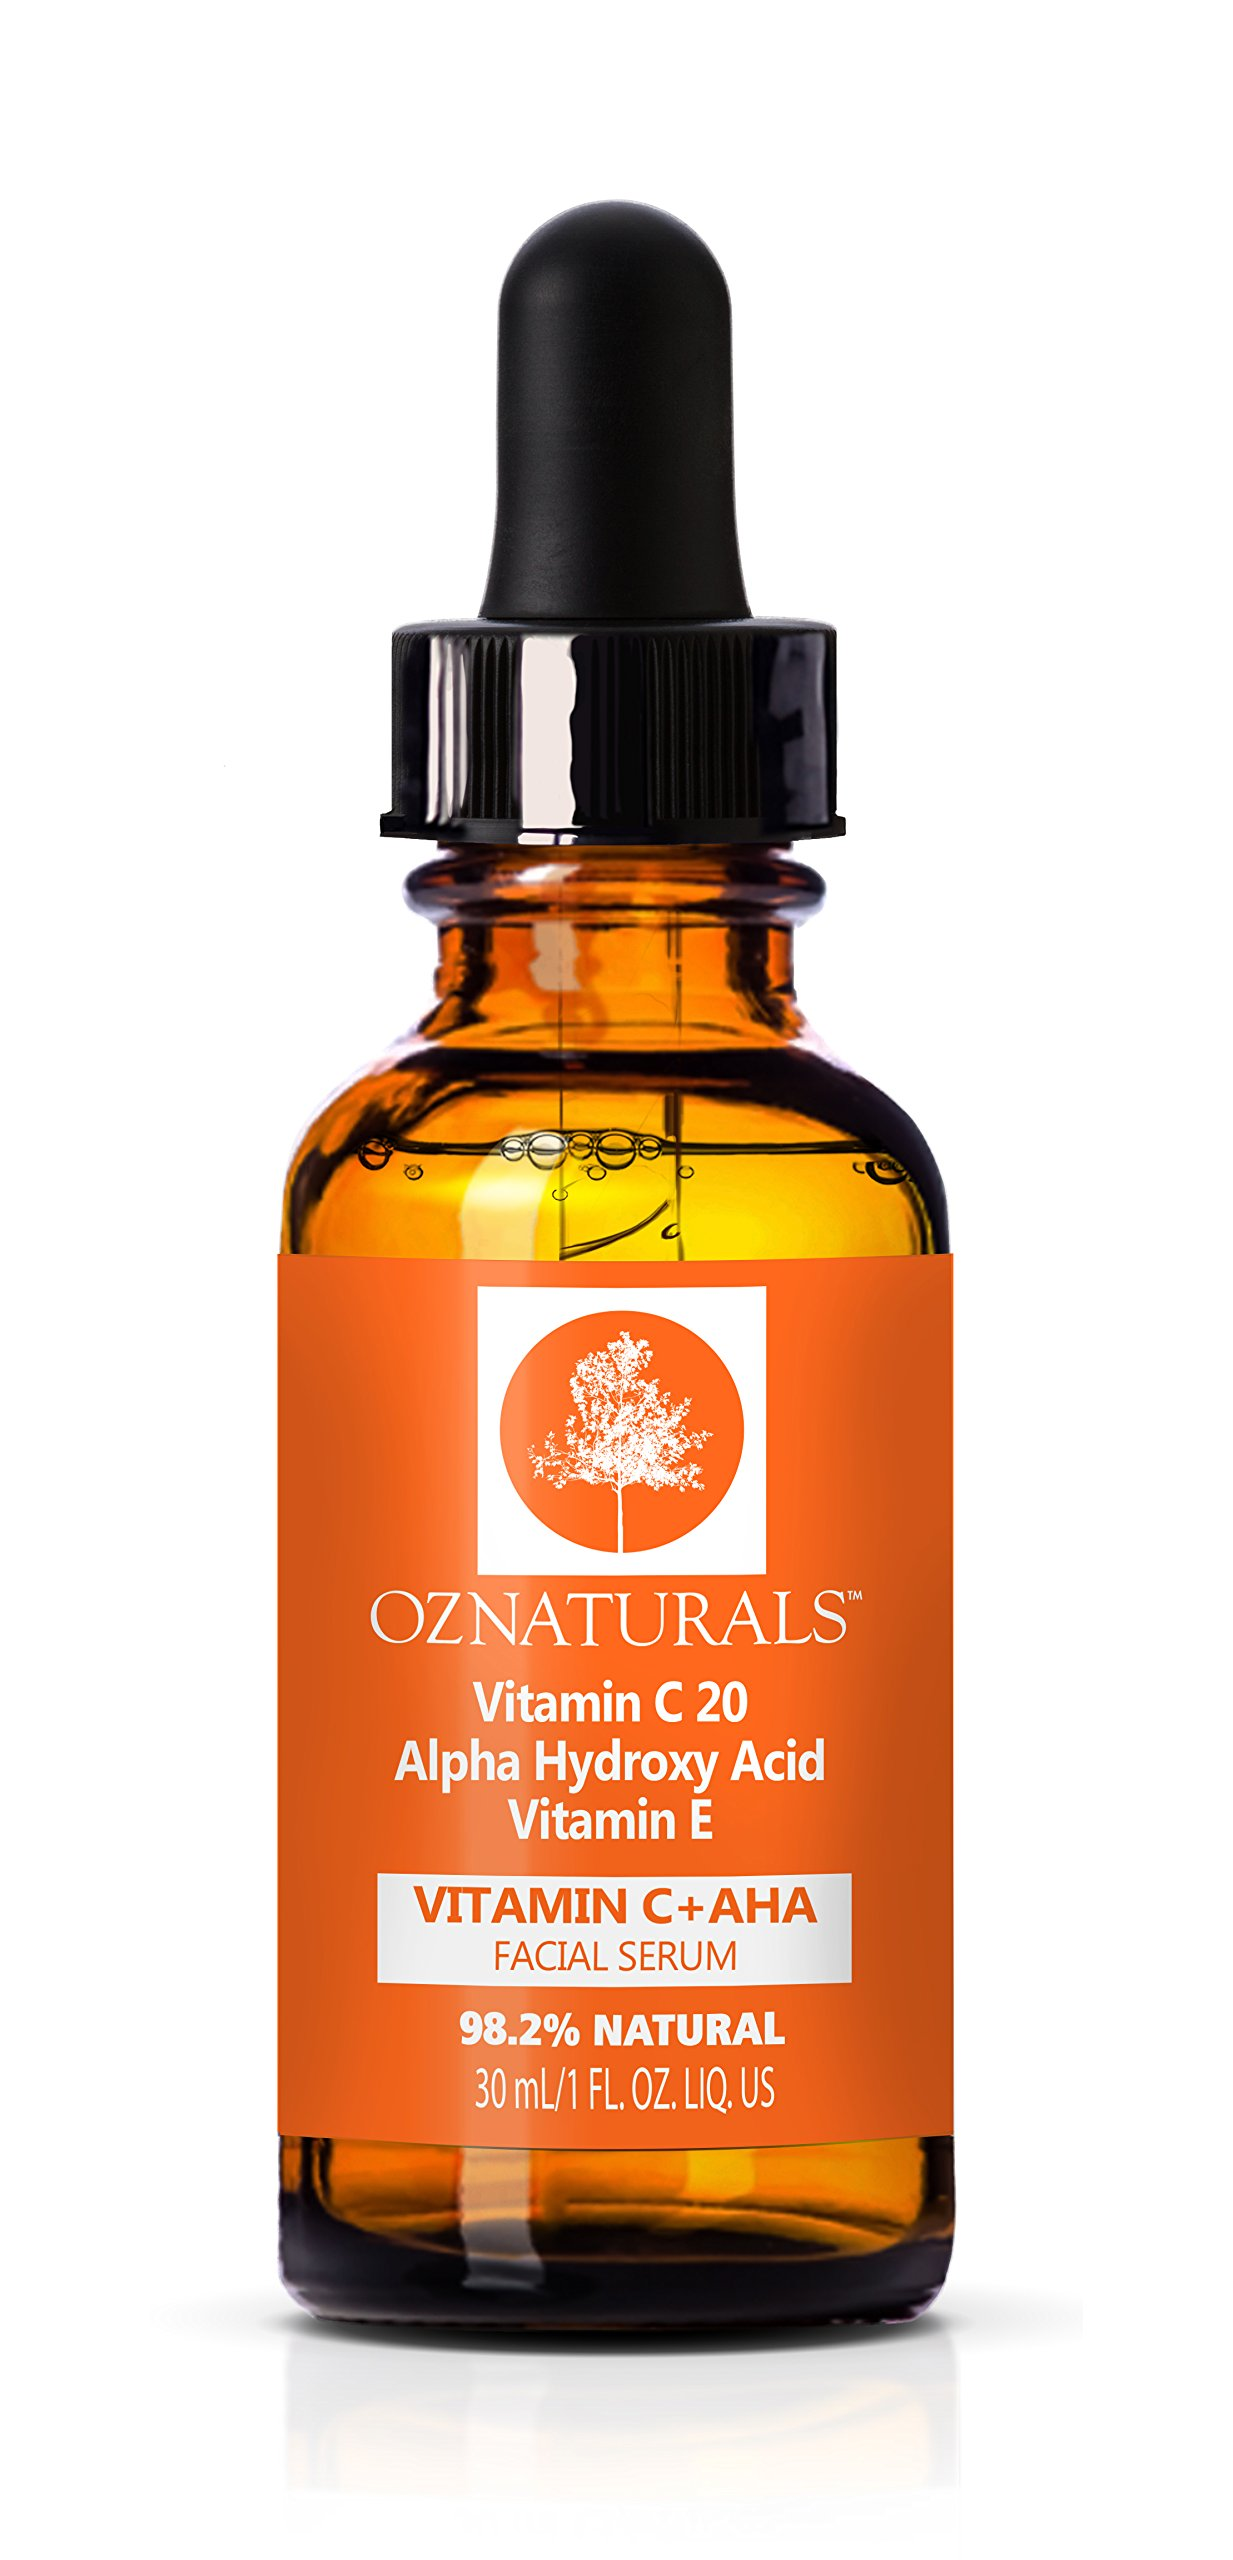 OZNaturals Vitamin C Skin Serum + AHA Glycolic Acid For Your Face - This Anti Aging Anti Wrinkle Serum Delivers The Youthful Glow You've Been Looking For! 1 fl.oz